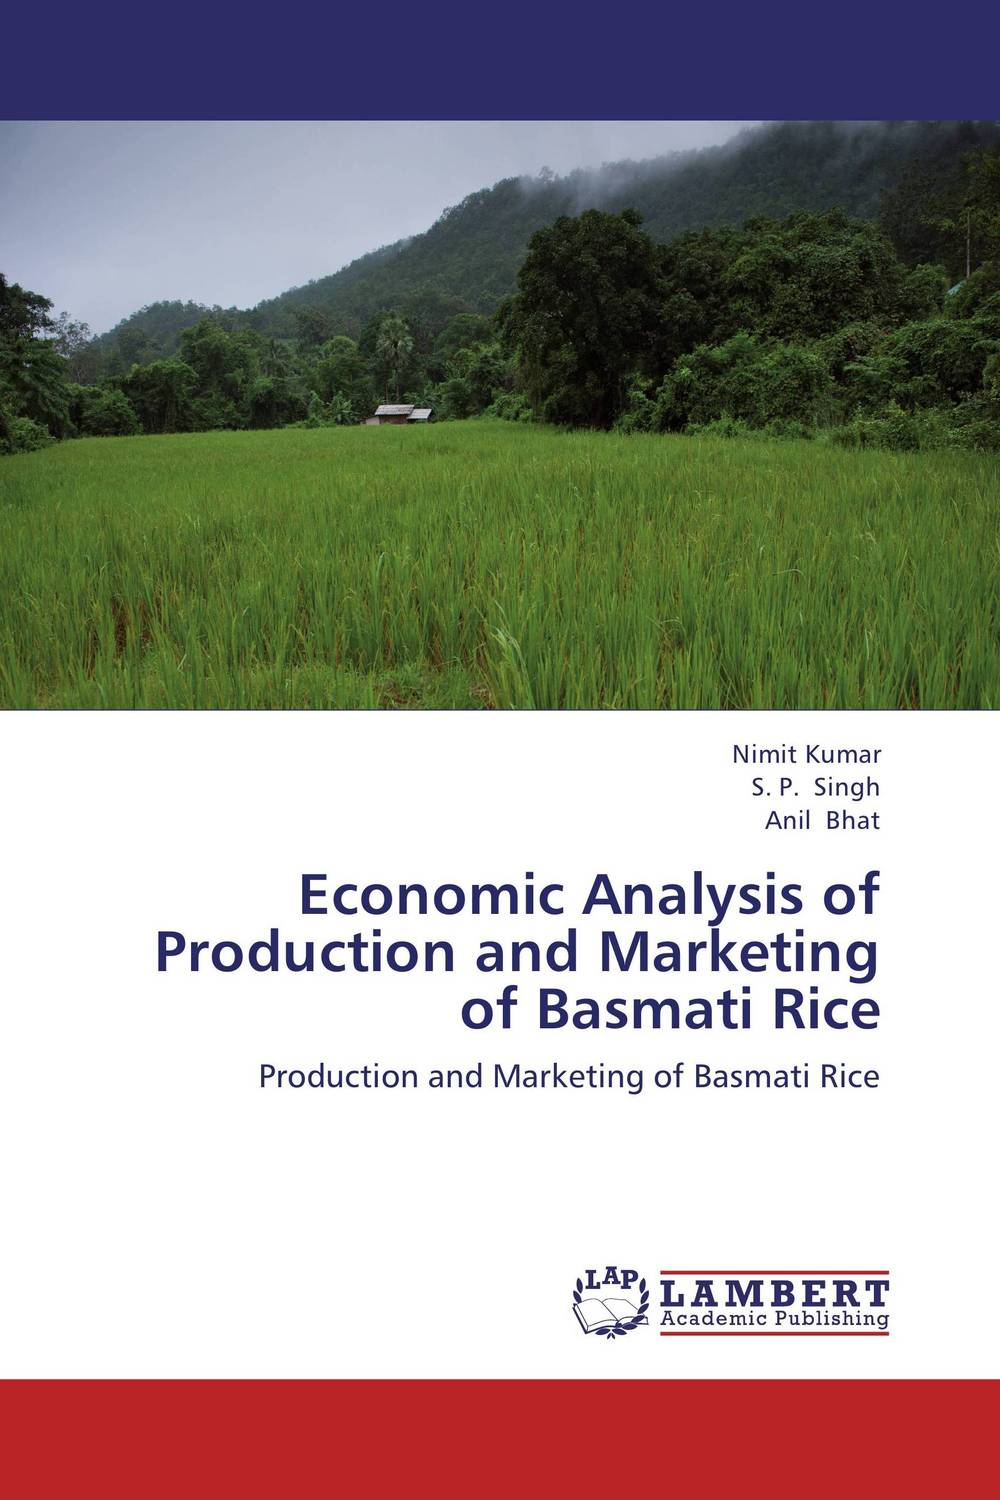 Economic Analysis of Production and Marketing of Basmati Rice dr babar zaheer butt and dr kashif ur rehman economic factors and stock returns sectoral analysis